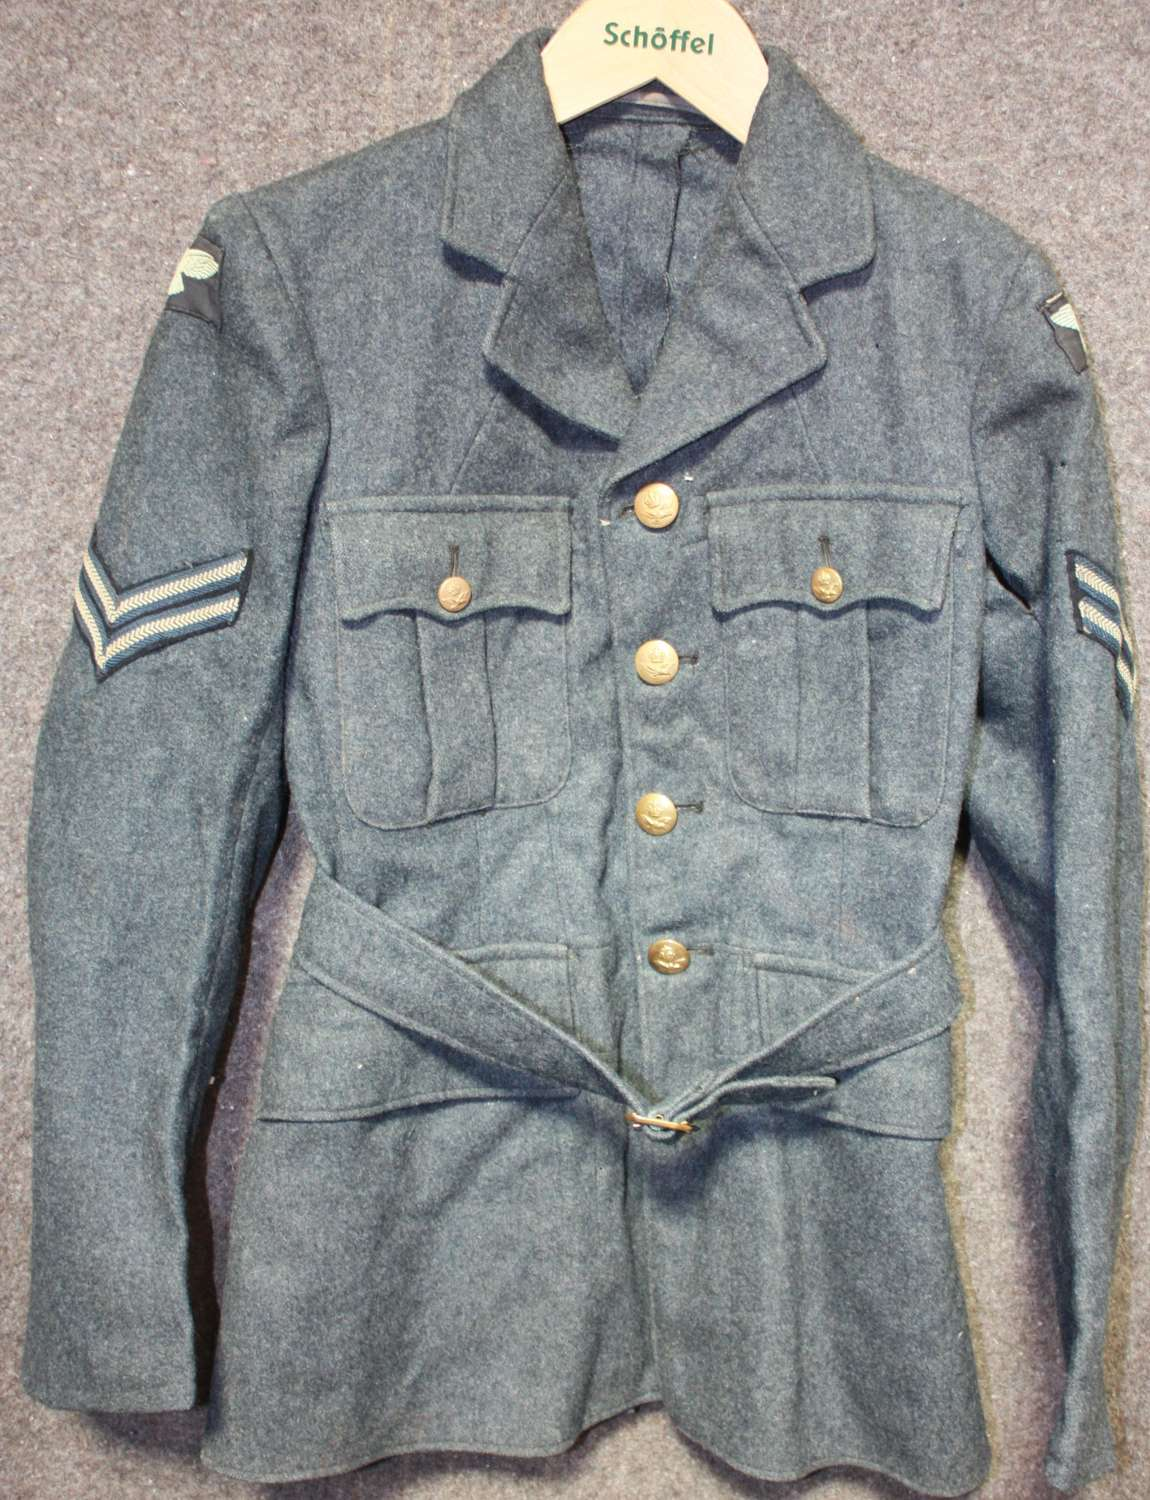 A SMALL SIZE 1940 DATED OTHER RANKS 4 POCKET TUNIC